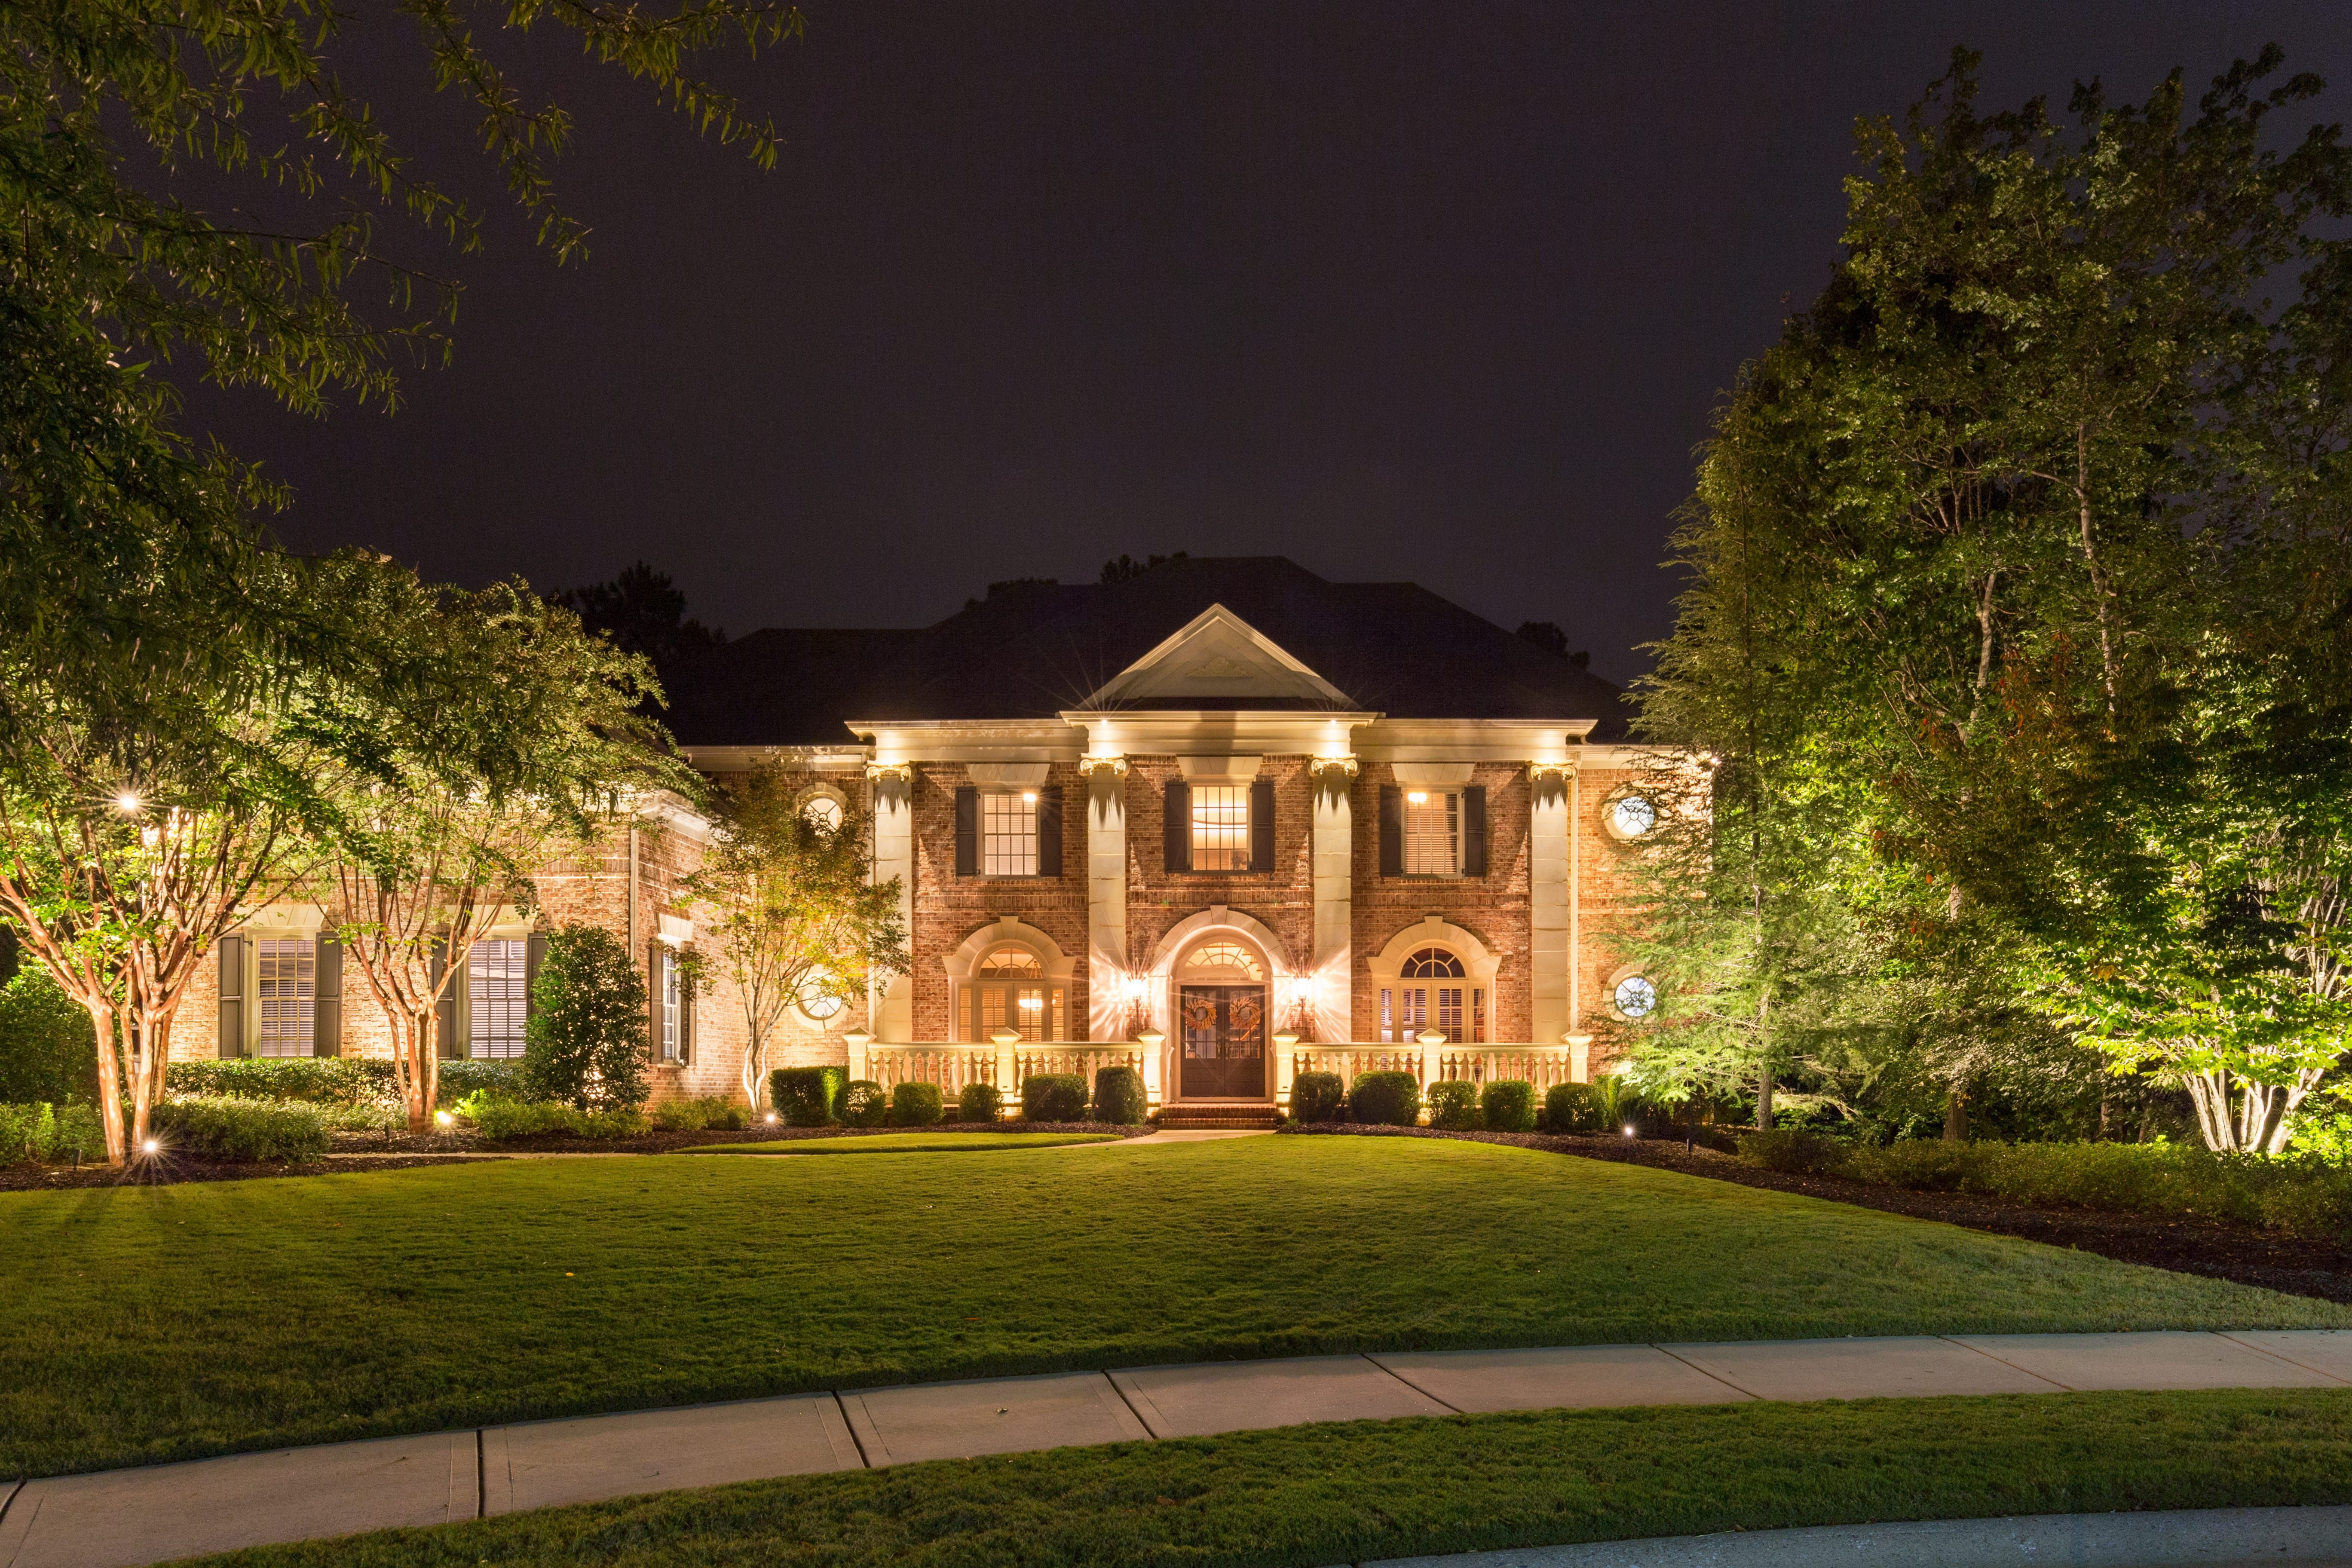 Elegant Home In Atlanta Ga That Has Up Lighting And